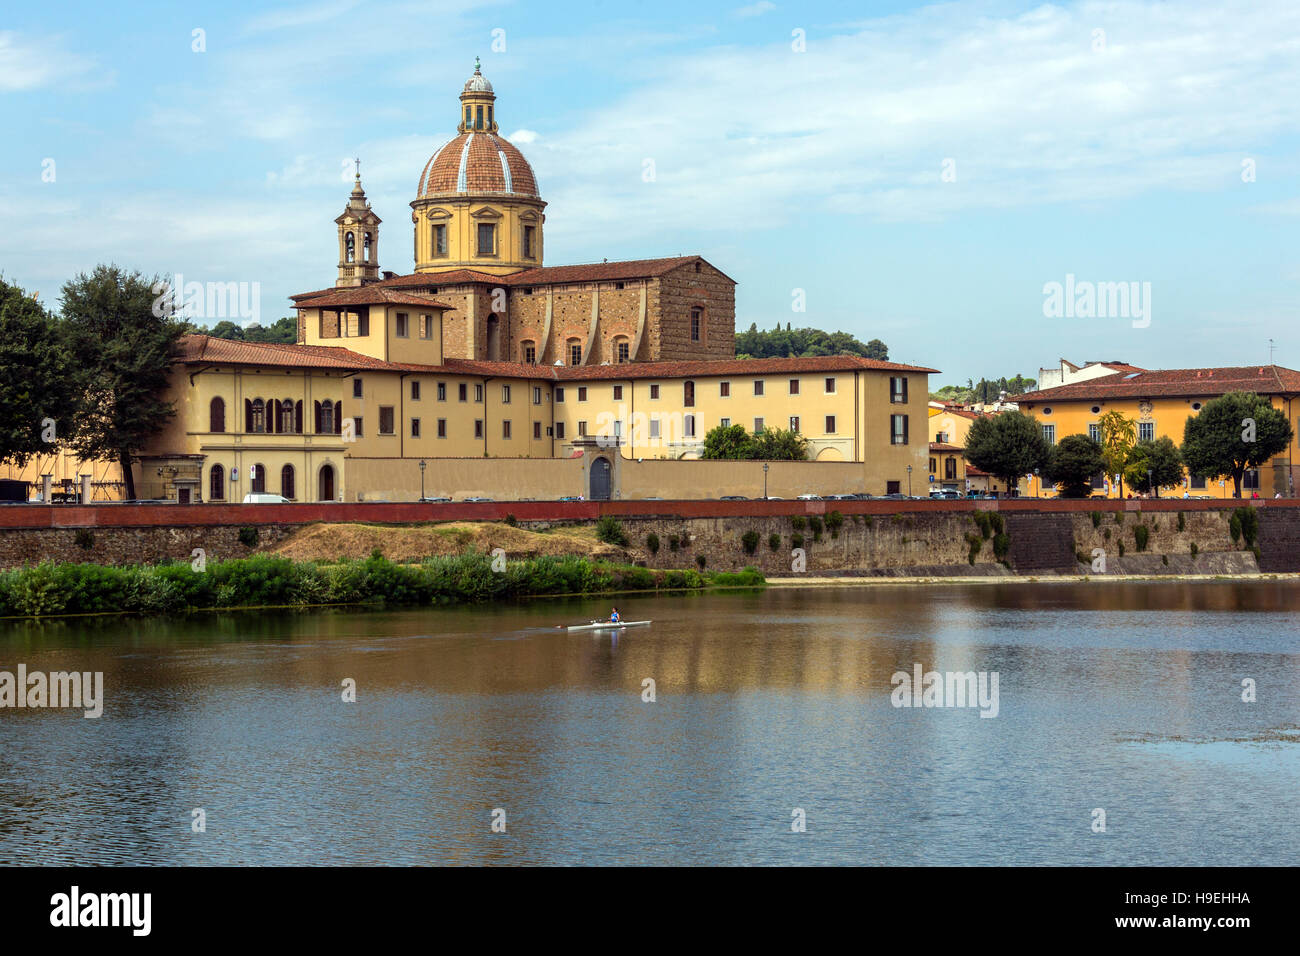 View over the River Arno towards the Basilica di Santo Spirito (Basilica of the Holy Spirit) in Florence, Italy. Stock Photo